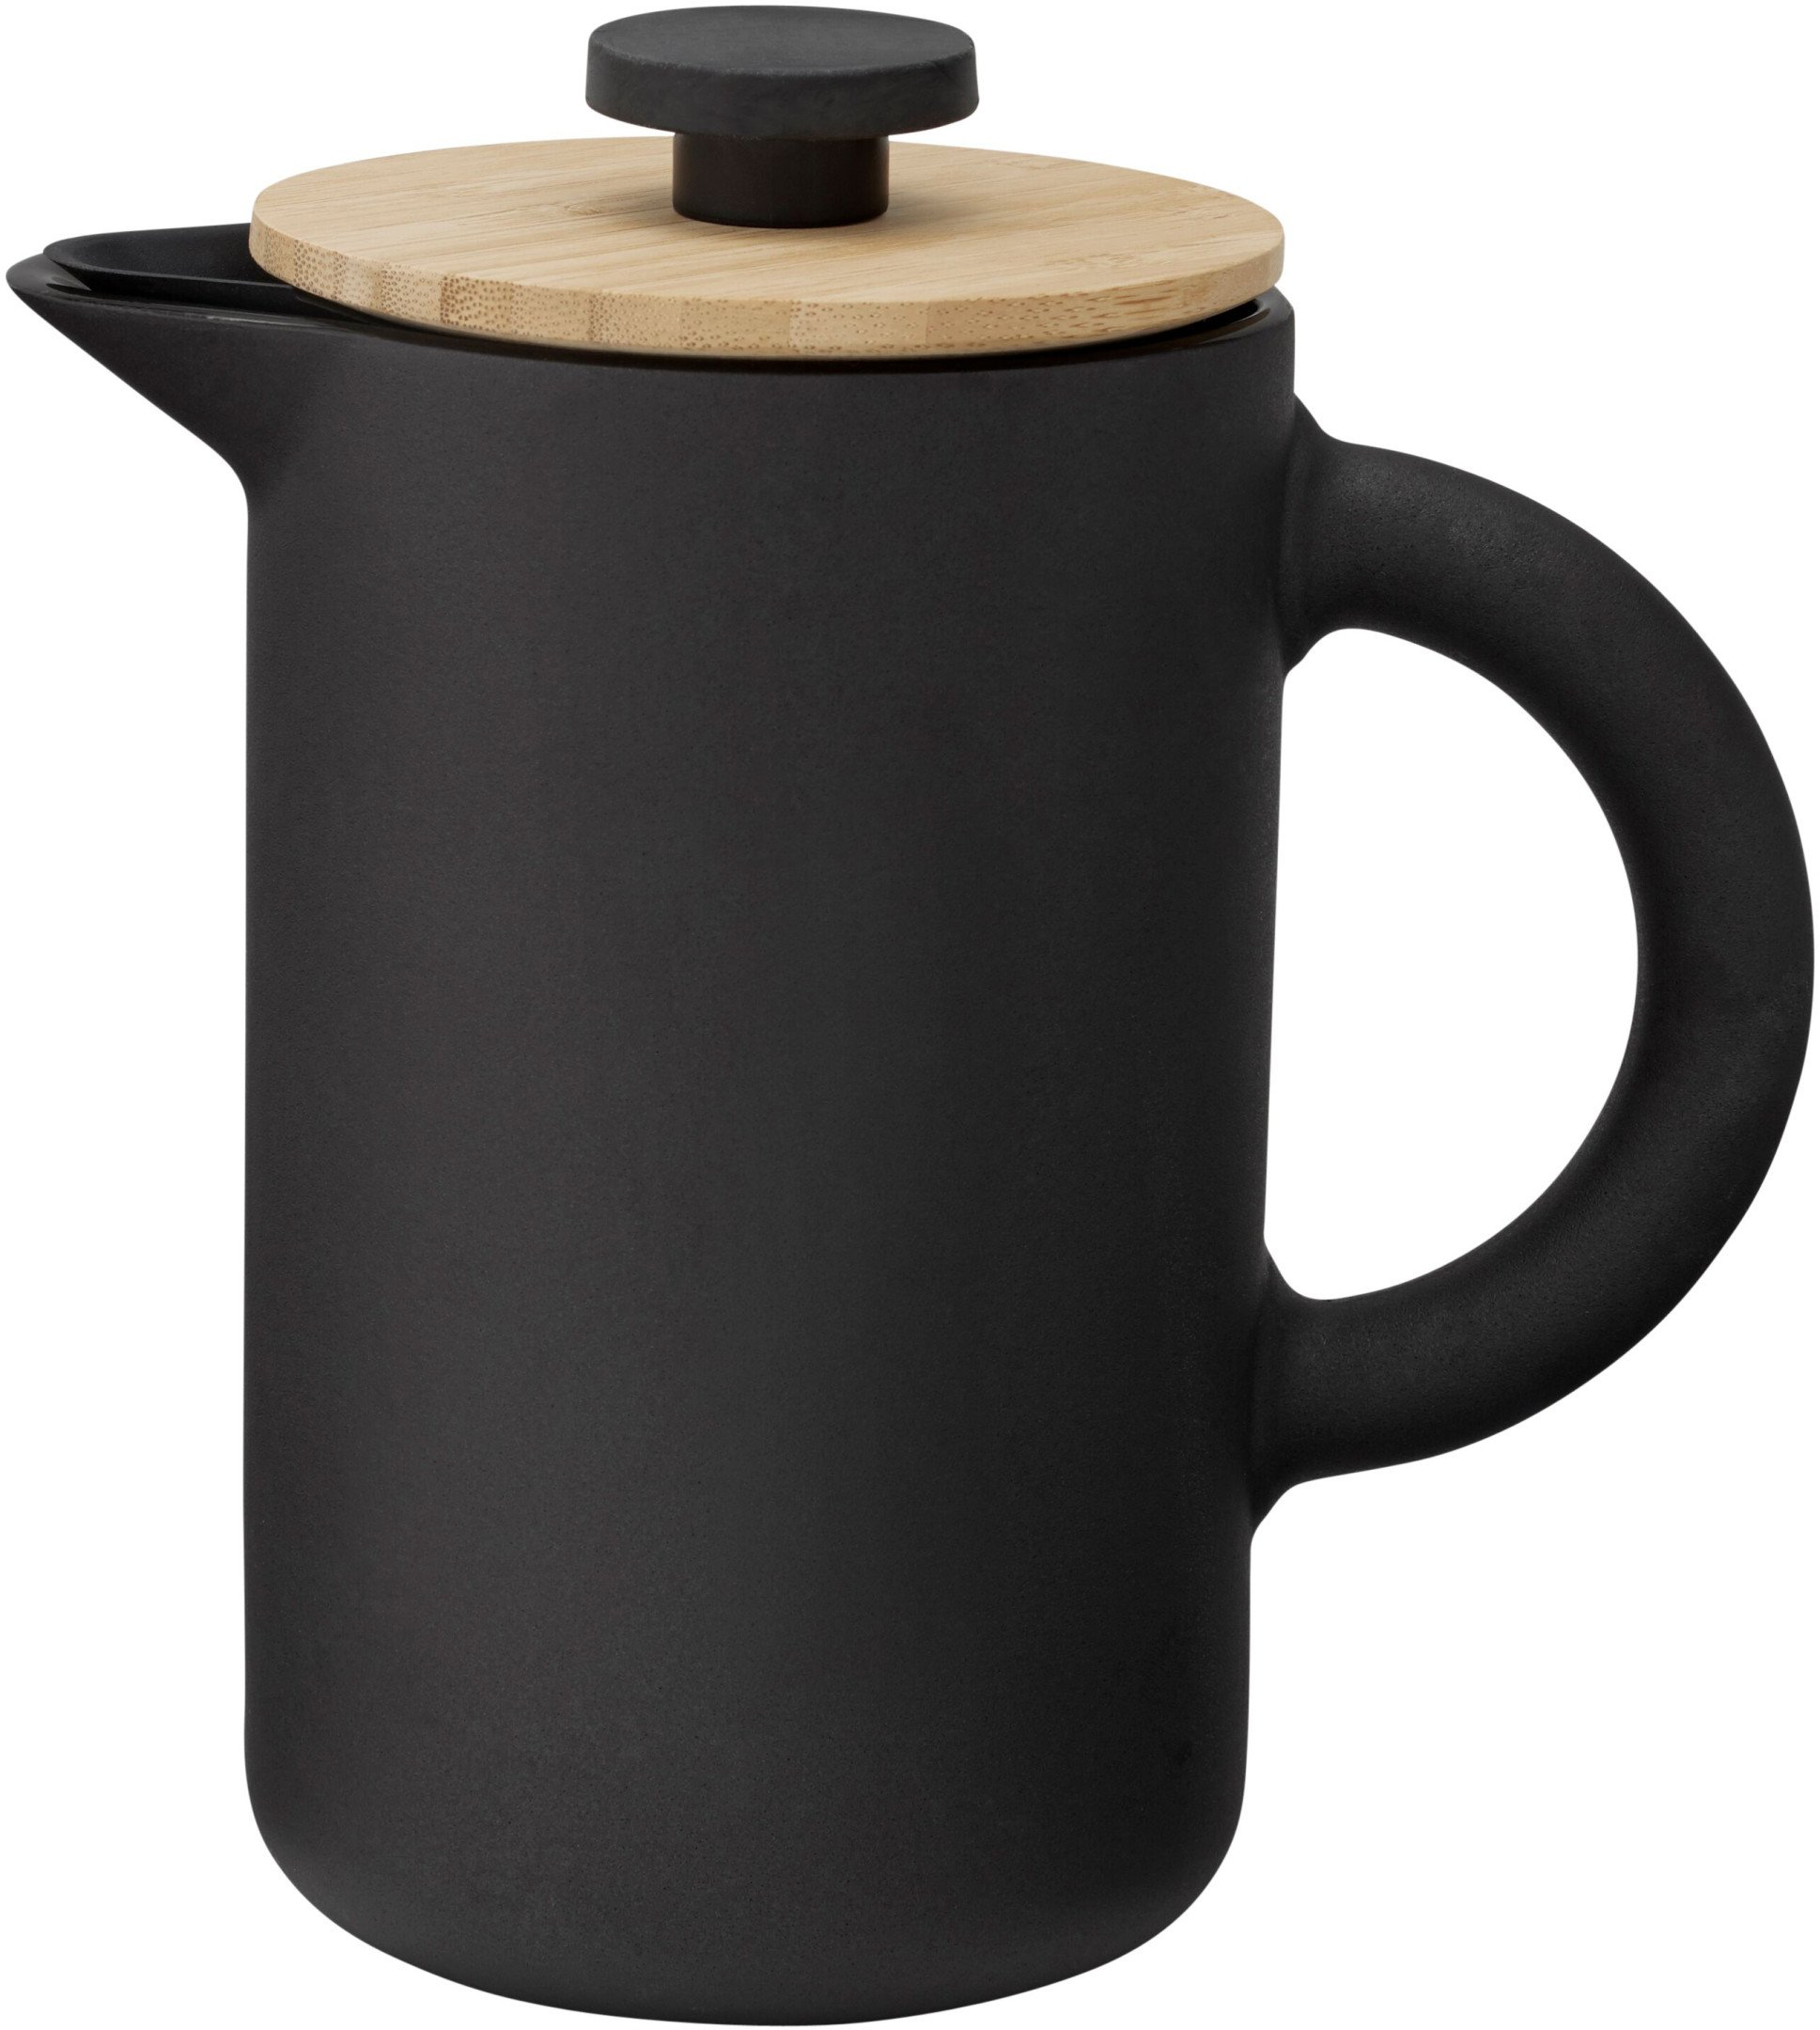 Theo French Press Black by F. Cayouette for Stelton